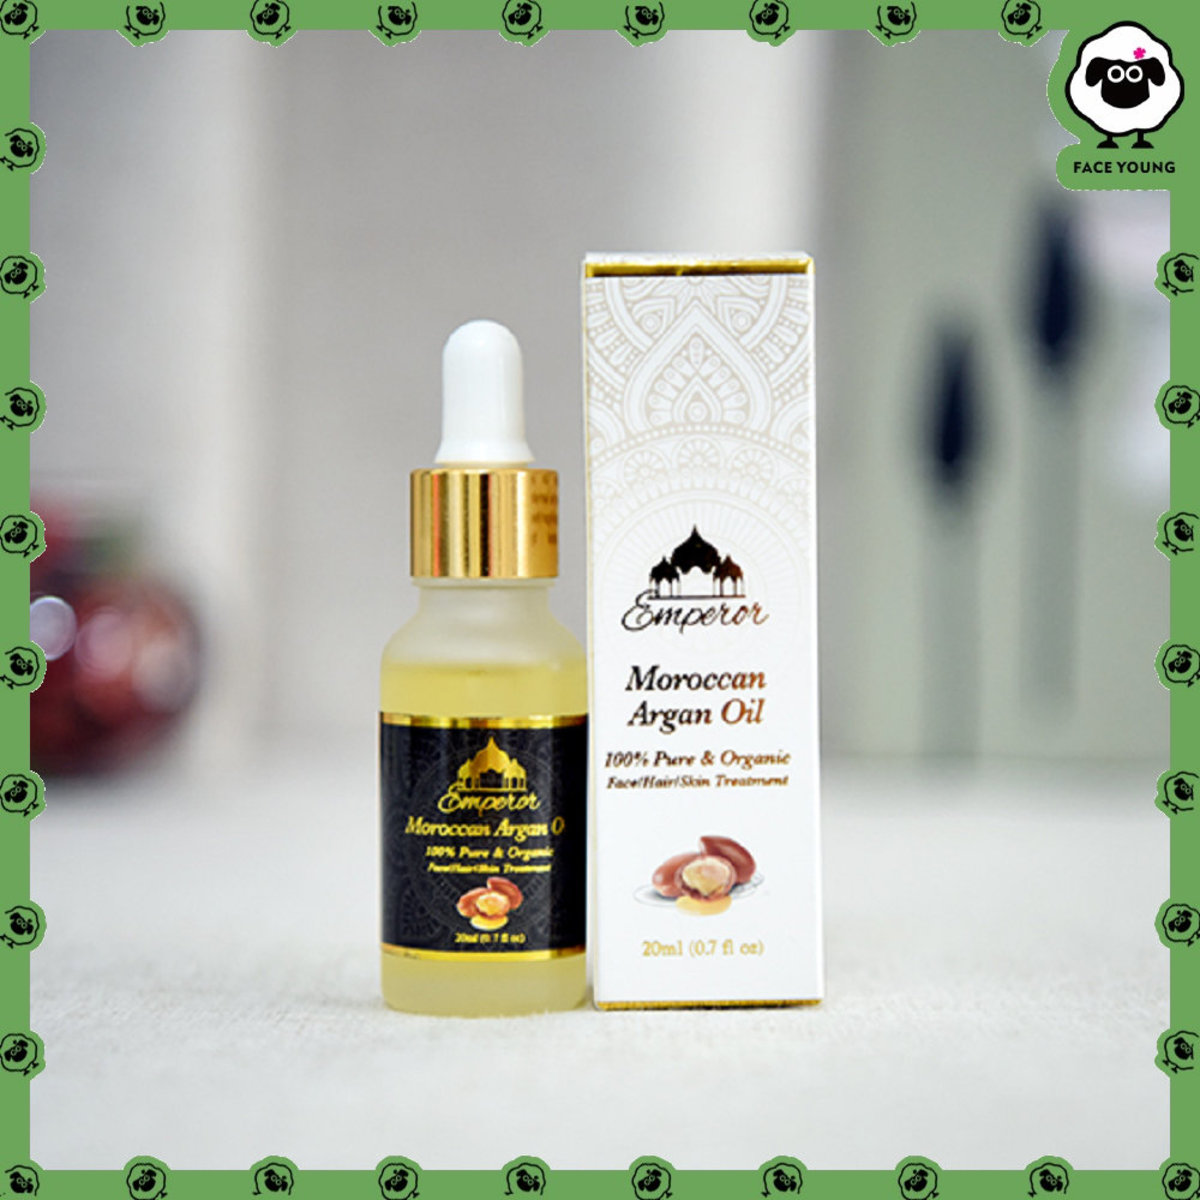 100% Moroccan Argan Oil (20ml)